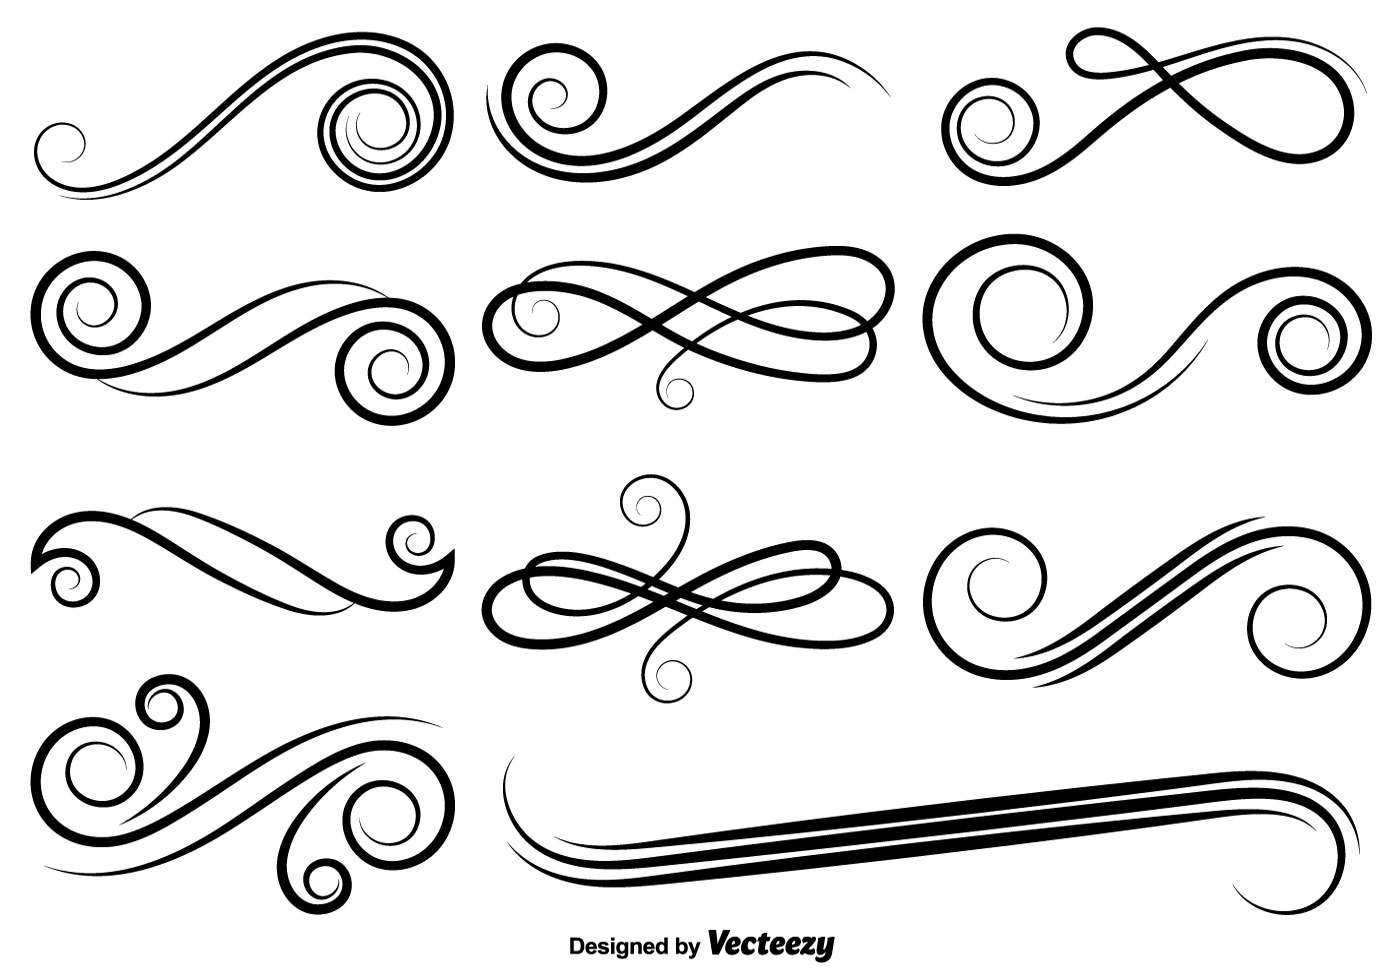 Calligraphy Flourish Vector At Getdrawings